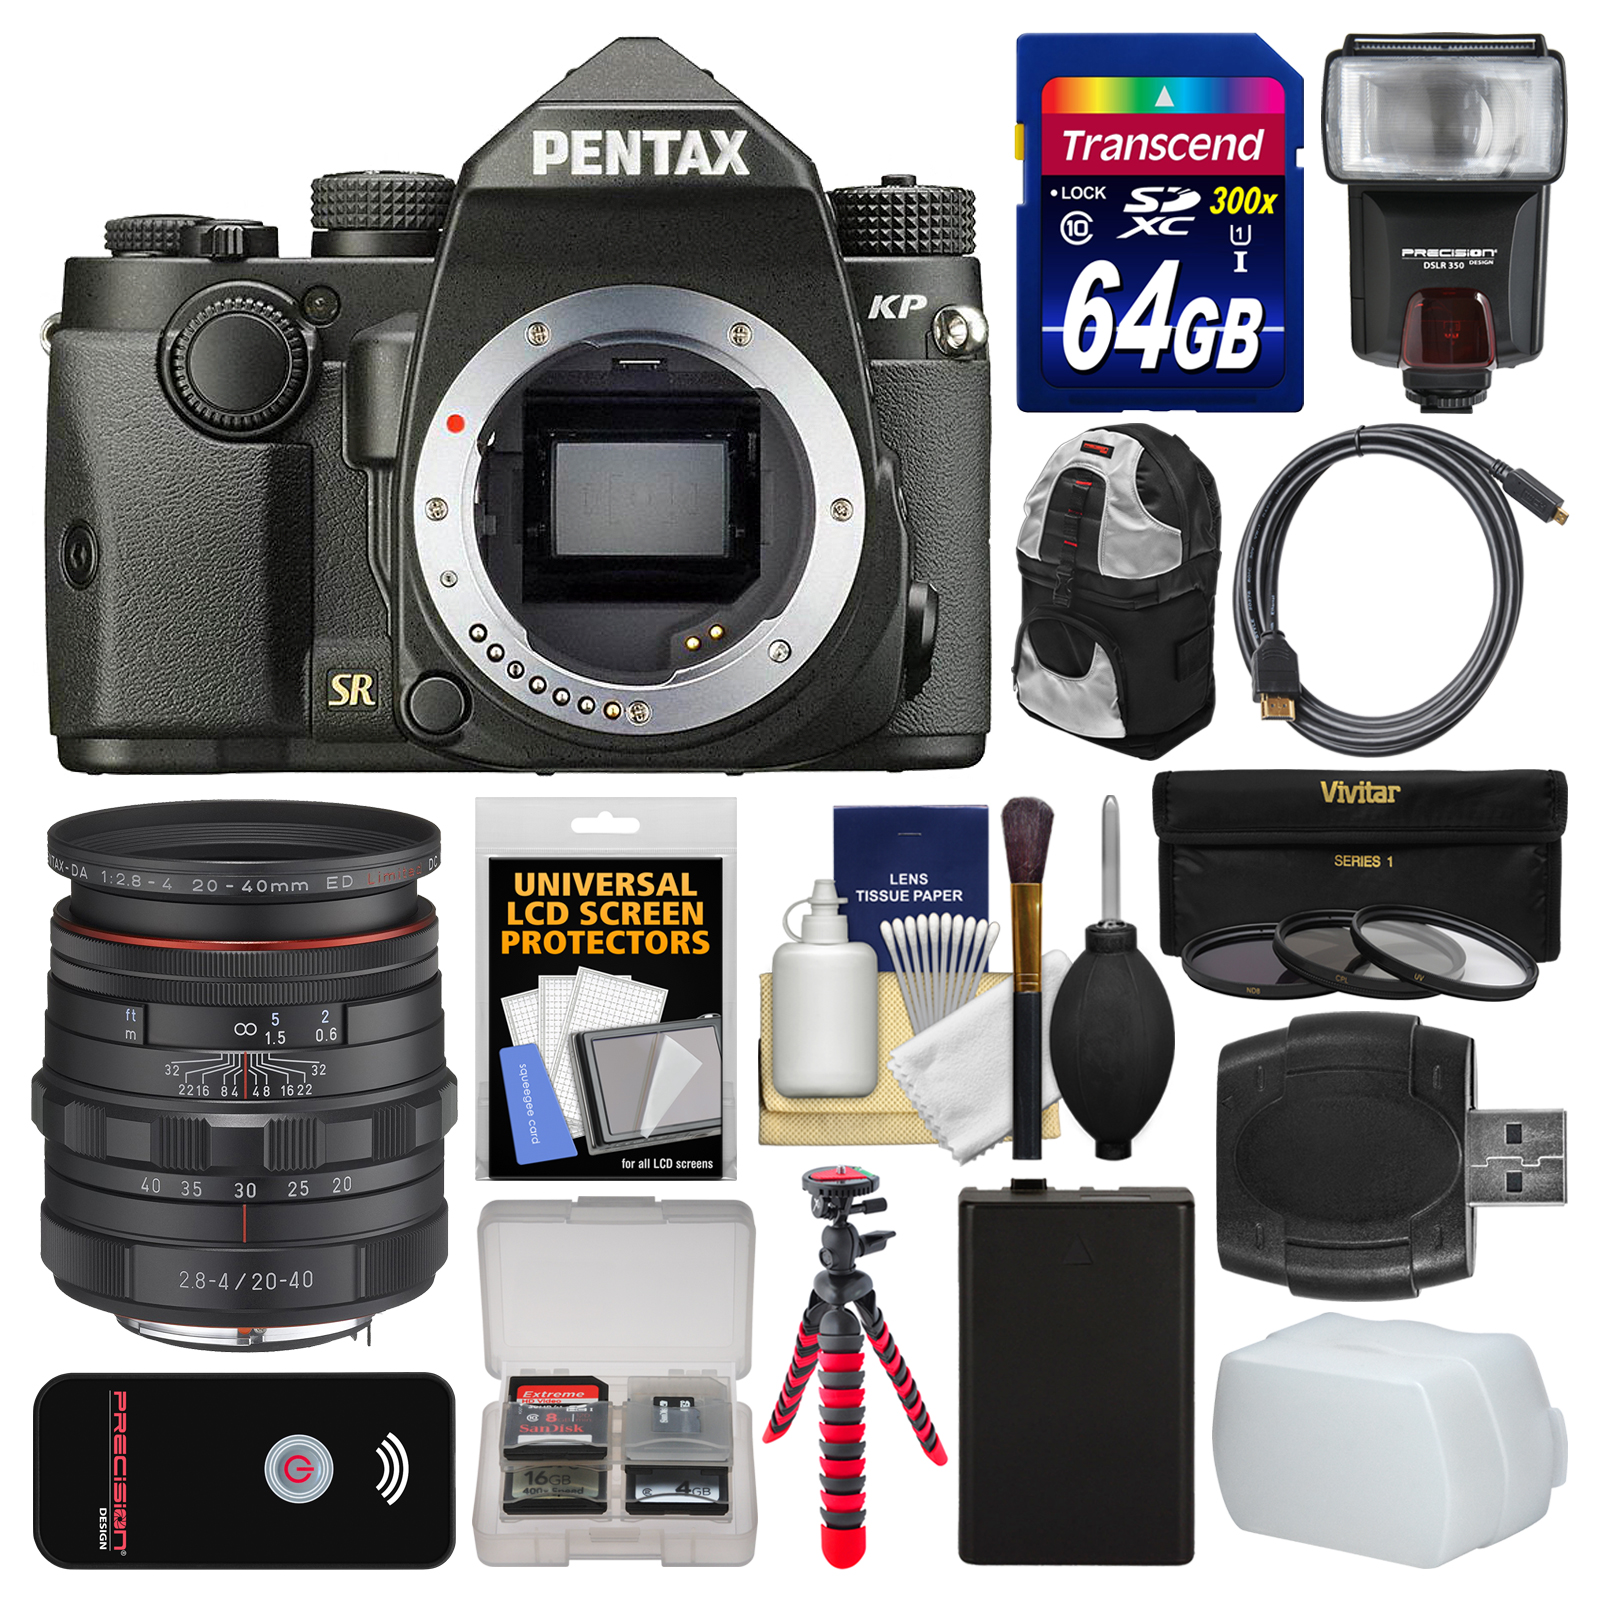 Pentax KP Wi-Fi Digital SLR Camera Body (Black) with 20-40mm Lens + 64GB Card + Backpack + Flash + Battery +... by Pentax